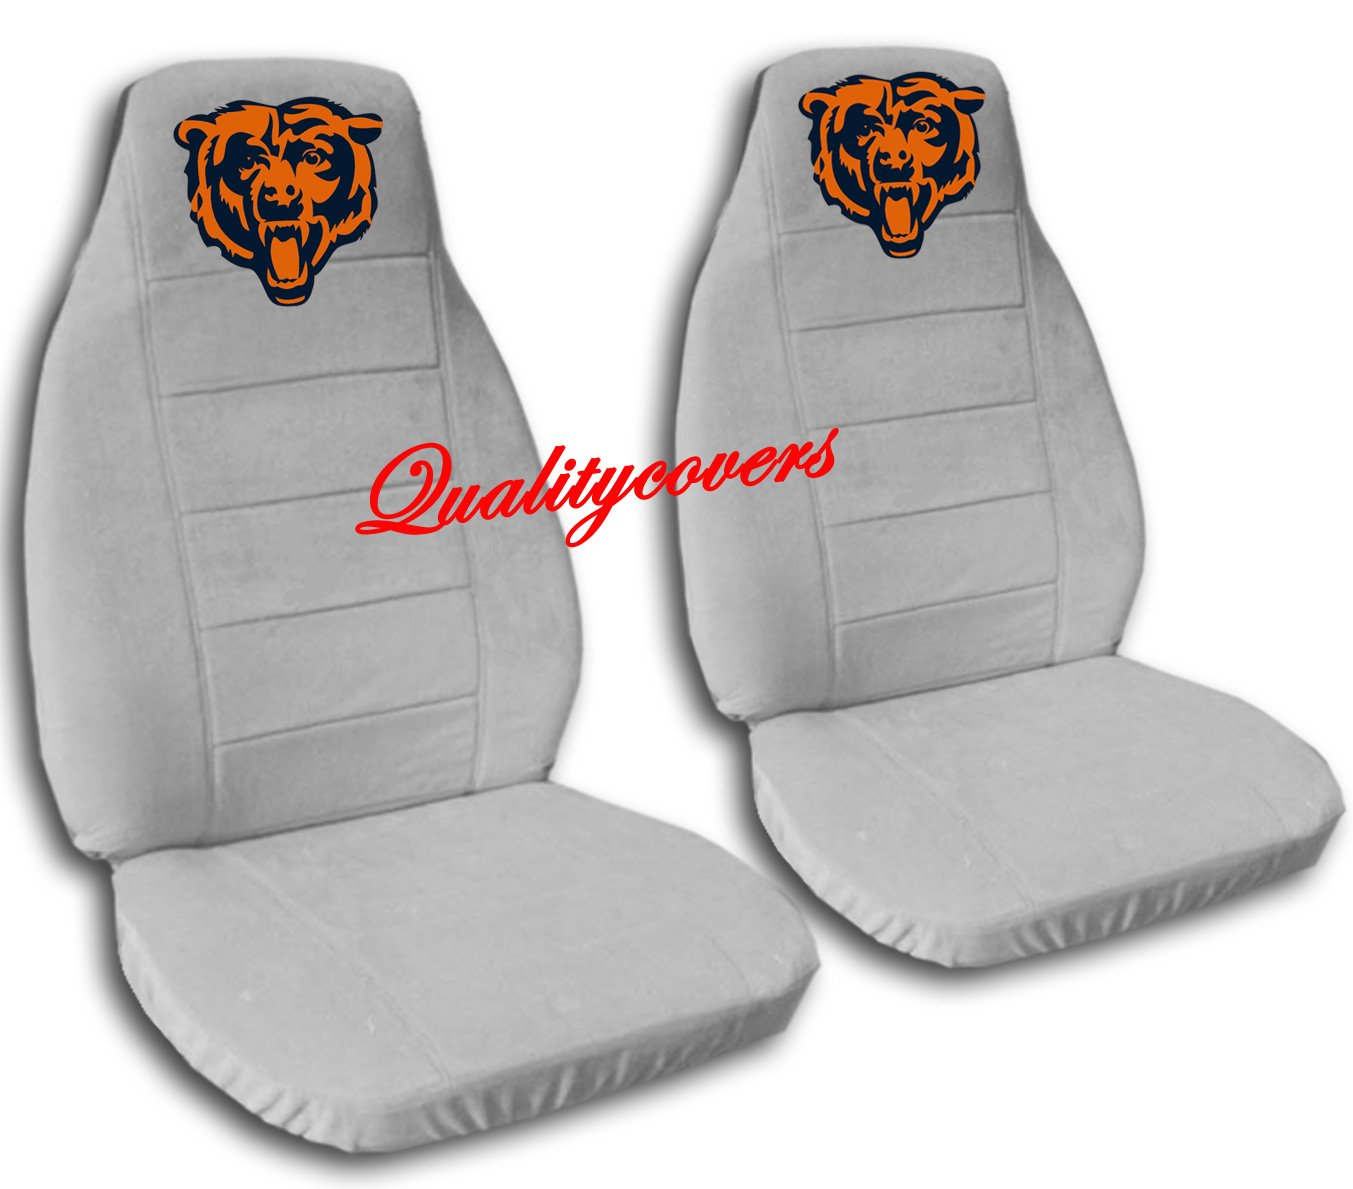 2 Silver Chicago seat covers for a 2007 to 2012 Chevrolet Silverado. Side airbag friendly.